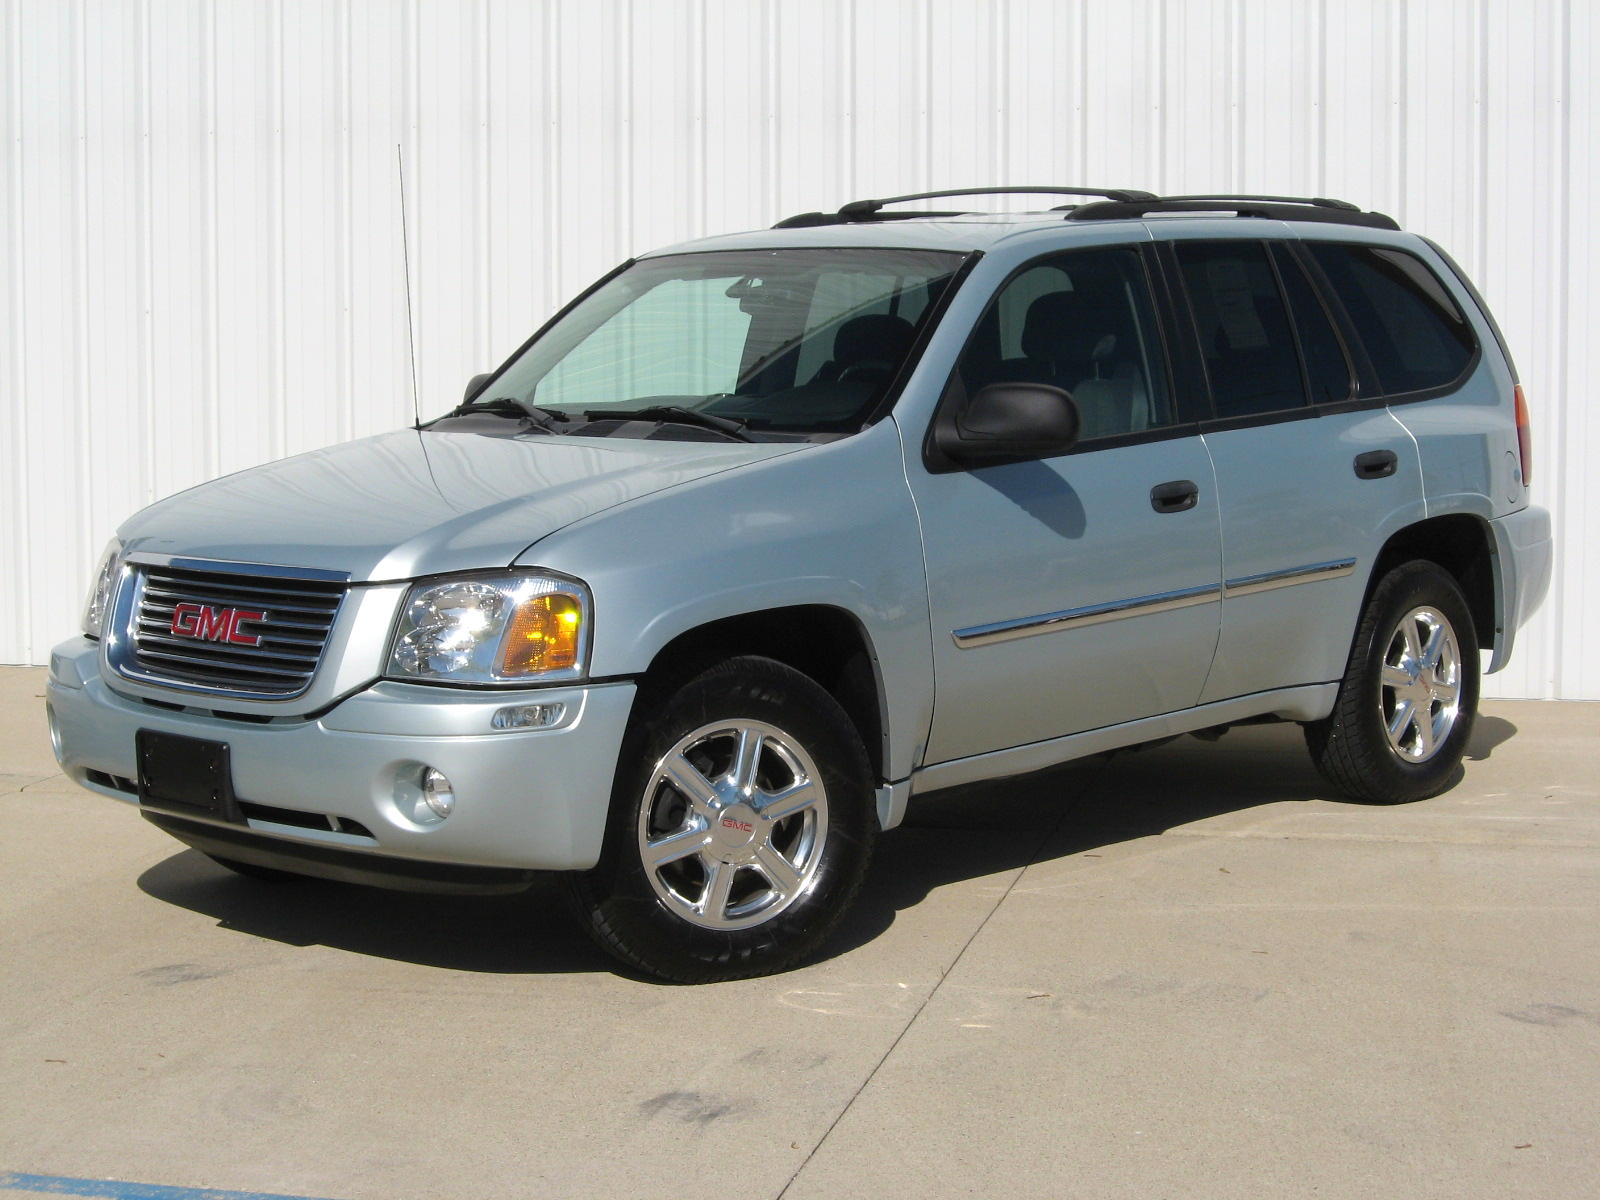 2008 Gmc Envoy Photos Informations Articles Bestcarmag Com